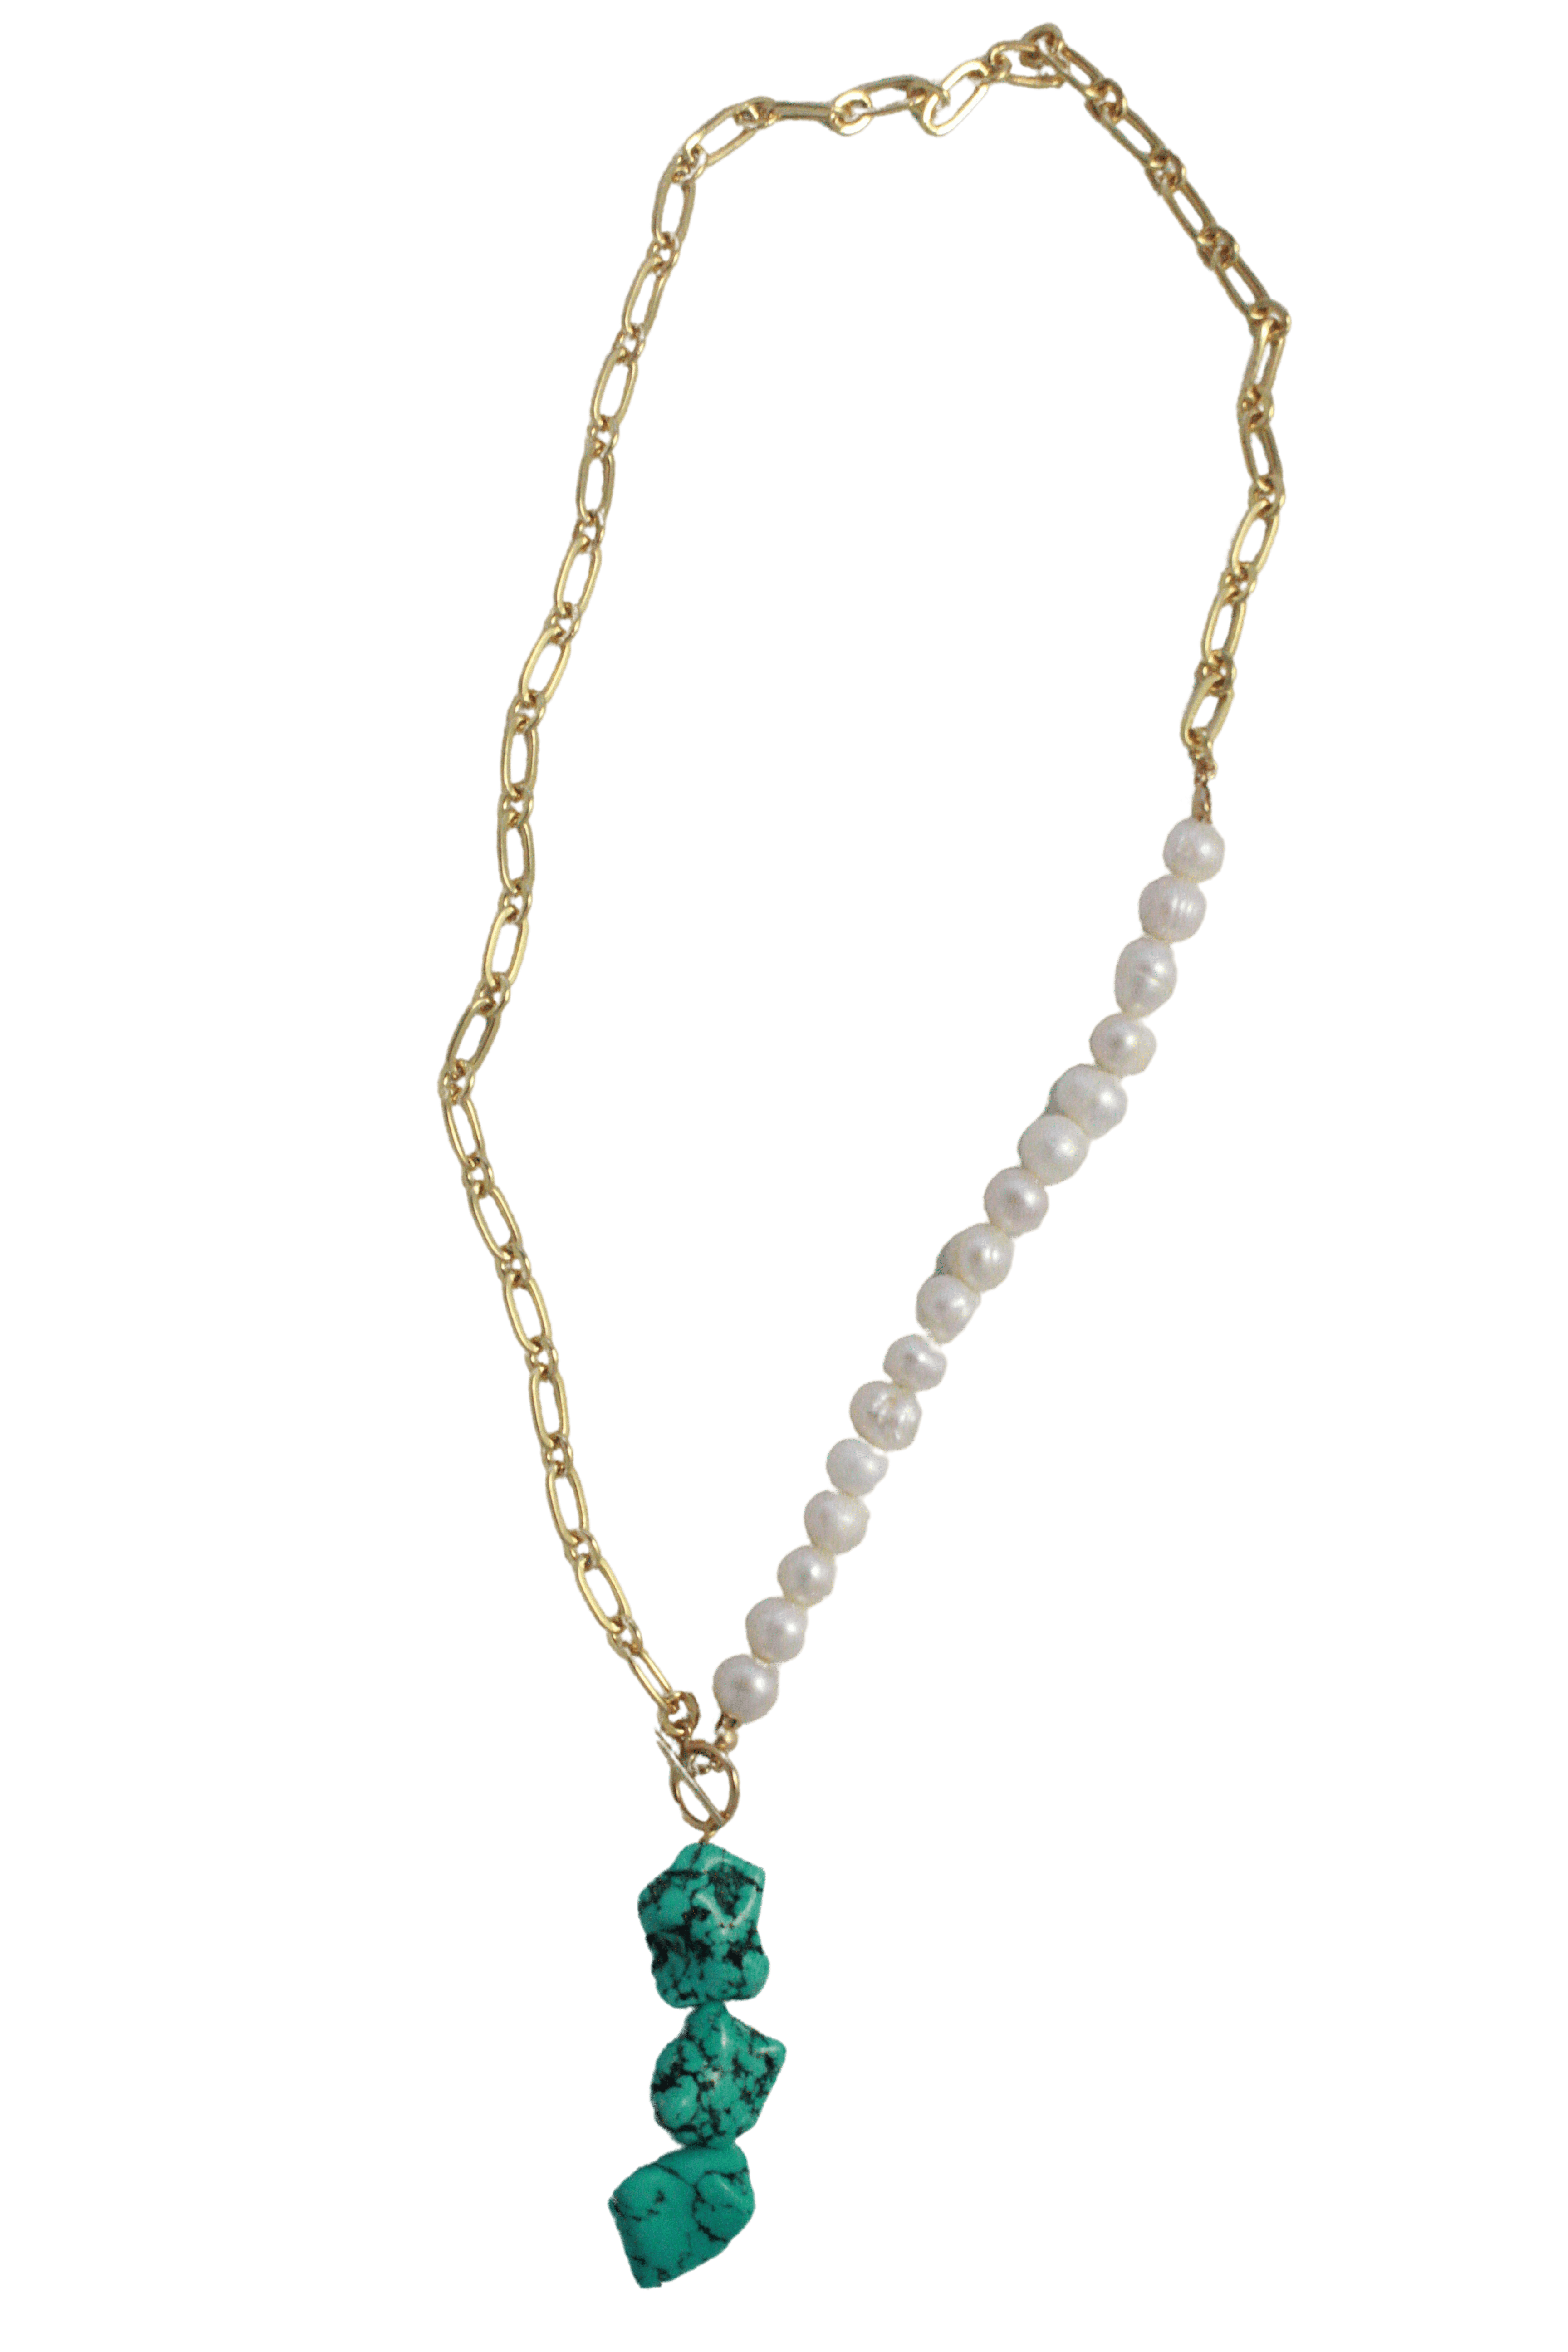 half pearl half chain necklace with turquoise pendant